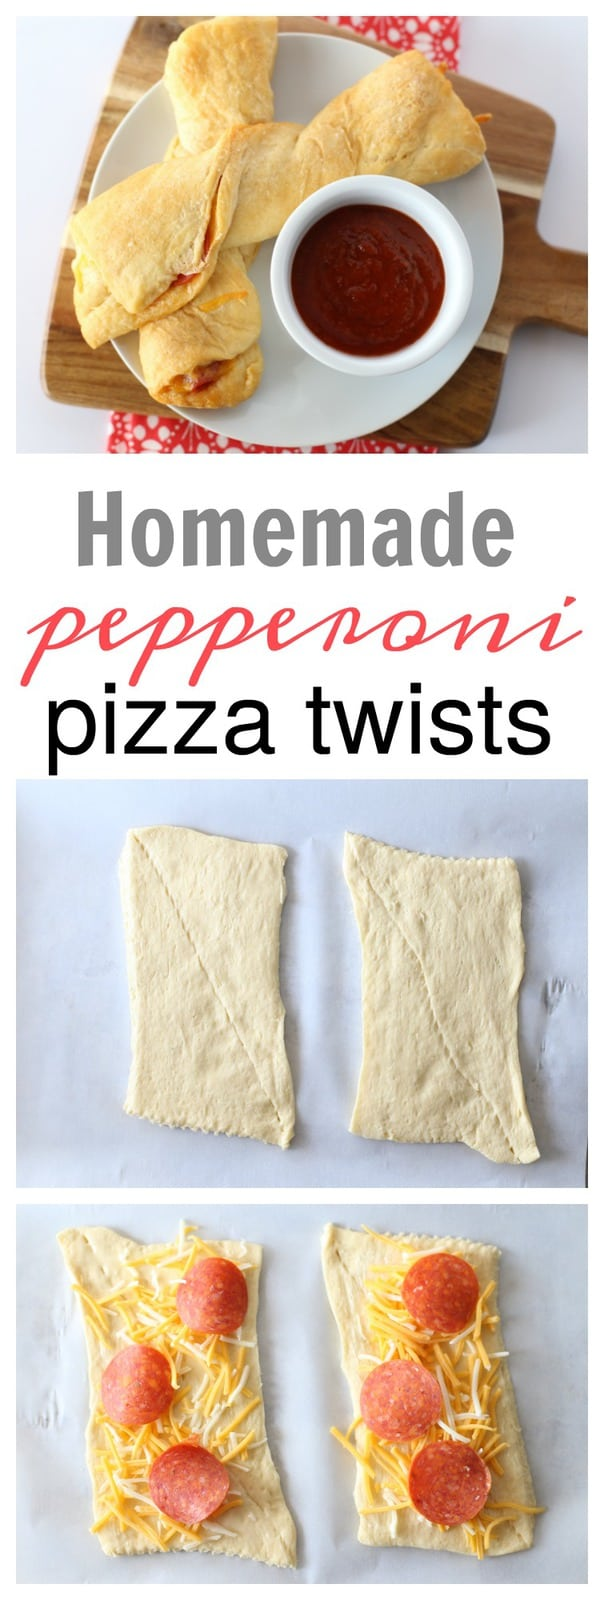 Homemade Pepperoni Pizza Twists